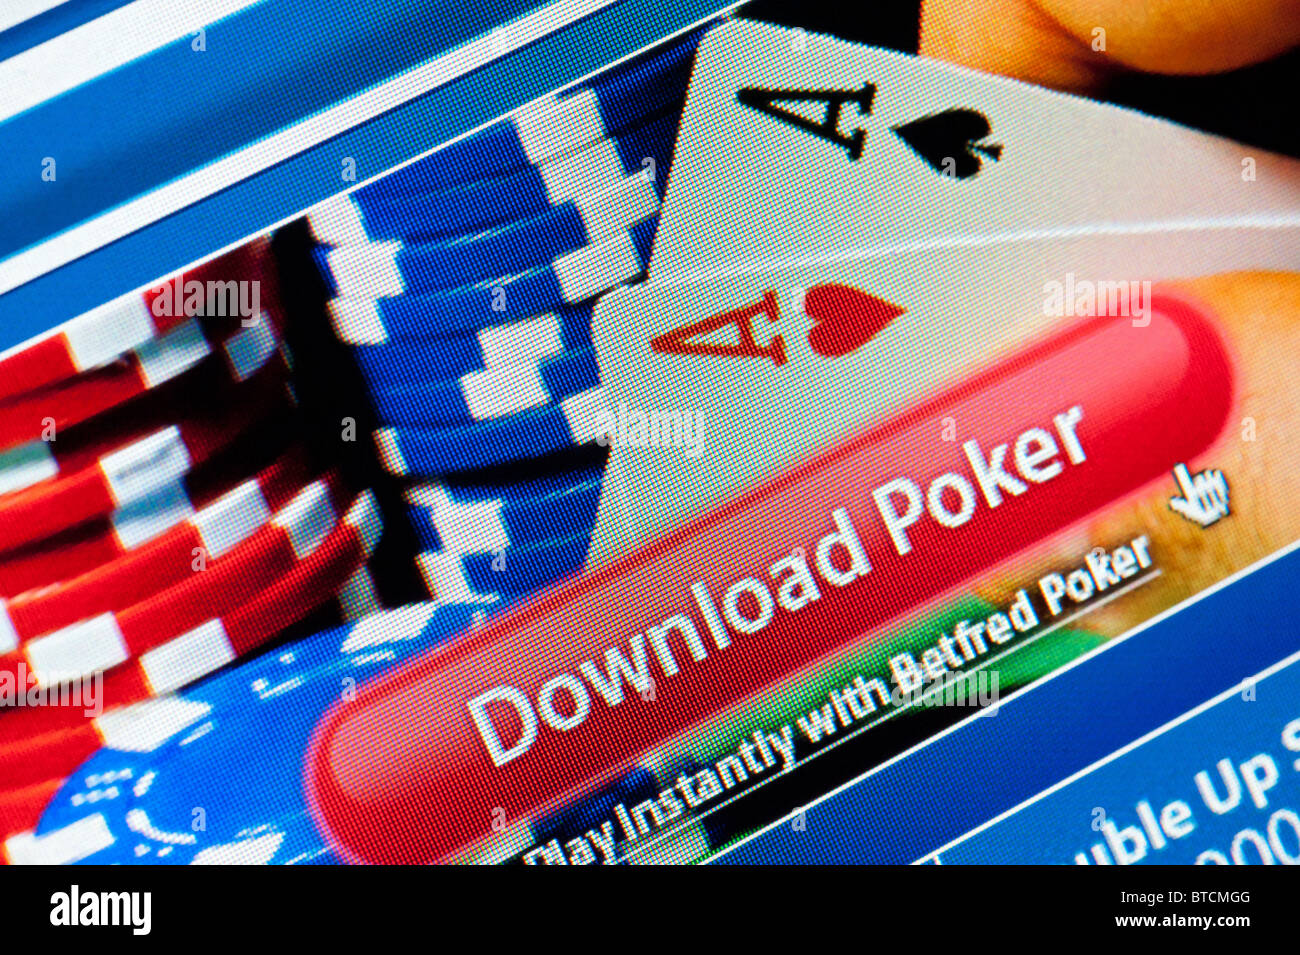 Detail of screenshot from online poker website Betfred - Stock Image